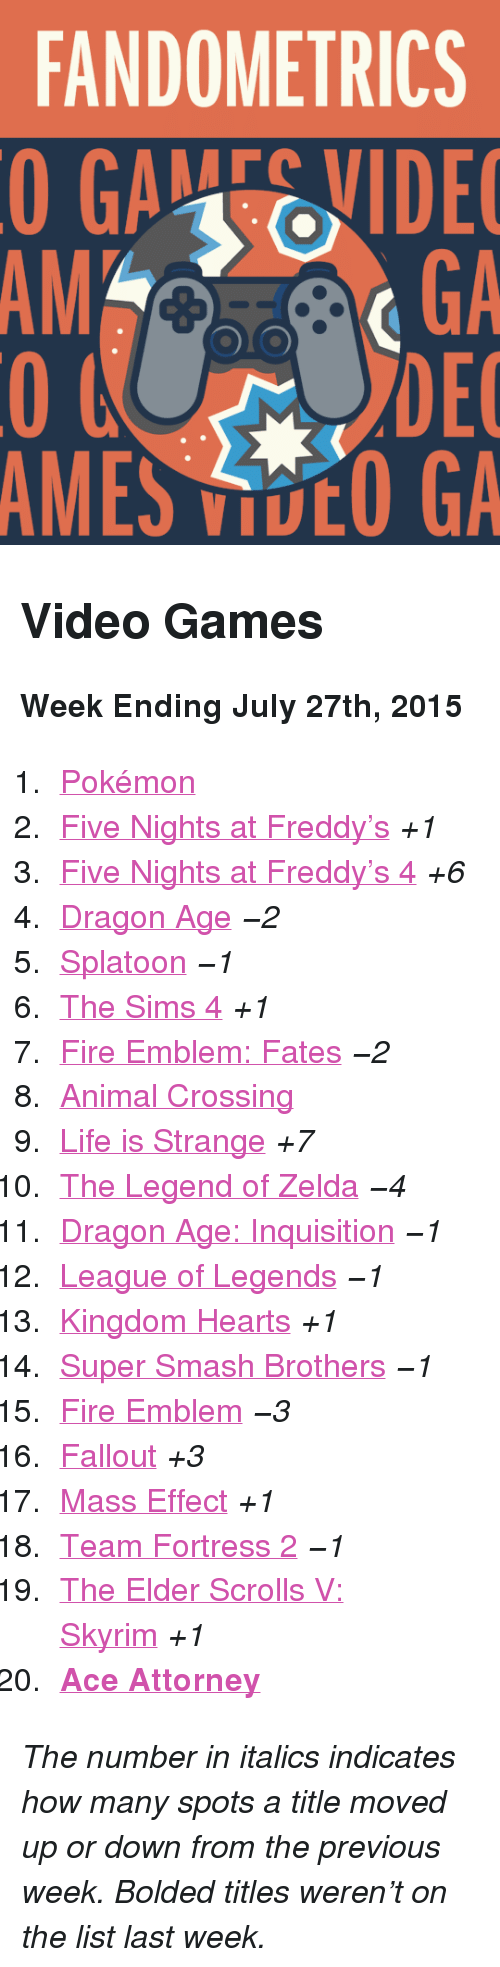 "Five Nights: FANDOMETRICS  GAEVIDE  GA  DEC  AMES VOO GA  AM <h2>Video Games</h2><p><b>Week Ending July 27th, 2015</b></p><ol><li><a href=""http://www.tumblr.com/search/pokemon"">Pokémon</a></li>  <li><a href=""http://www.tumblr.com/search/five%20nights%20at%20freddy's"">Five Nights at Freddy&rsquo;s</a> <i>+1</i></li>  <li><a href=""http://www.tumblr.com/search/five%20nights%20at%20freddy's%204"">Five Nights at Freddy&rsquo;s 4</a> <i>+6</i></li>  <li><a href=""http://www.tumblr.com/search/dragon%20age"">Dragon Age</a> <i>−2</i></li>  <li><a href=""http://www.tumblr.com/search/splatoon"">Splatoon</a> <i>−1</i></li>  <li><a href=""http://www.tumblr.com/search/sims%204"">The Sims 4</a> <i>+1</i></li>  <li><a href=""http://www.tumblr.com/search/fire%20emblem%20fates"">Fire Emblem: Fates</a> <i>−2</i></li>  <li><a href=""http://www.tumblr.com/search/acnl"">Animal Crossing</a></li>  <li><a href=""http://www.tumblr.com/search/life%20is%20strange"">Life is Strange</a> <i>+7</i></li>  <li><a href=""http://www.tumblr.com/search/legend%20of%20zelda"">The Legend of Zelda</a> <i>−4</i></li>  <li><a href=""http://www.tumblr.com/search/dragon%20age%20inquisition"">Dragon Age: Inquisition</a> <i>−1</i></li>  <li><a href=""http://www.tumblr.com/search/league%20of%20legends"">League of Legends</a> <i>−1</i></li>  <li><a href=""http://www.tumblr.com/search/kingdom%20hearts"">Kingdom Hearts</a> <i>+1</i></li>  <li><a href=""http://www.tumblr.com/search/super%20smash%20bros"">Super Smash Brothers</a> <i>−1</i></li>  <li><a href=""http://www.tumblr.com/search/fire%20emblem"">Fire Emblem</a> <i>−3</i></li>  <li><a href=""http://www.tumblr.com/search/fallout"">Fallout</a> <i>+3</i></li>  <li><a href=""http://www.tumblr.com/search/mass%20effect"">Mass Effect</a> <i>+1</i></li>  <li><a href=""http://www.tumblr.com/search/tf2"">Team Fortress 2</a> <i>−1</i></li>  <li><a href=""http://www.tumblr.com/search/skyrim"">The Elder Scrolls V: Skyrim</a> <i>+1</i></li>  <li><a href=""http://www.tumblr.com/search/ace%20attorney""><b>Ace Attorney</b></a></li></ol><p><i>The number in italics indicates how many spots a title moved up or down from the previous week. Bolded titles weren't on the list last week.</i></p>"